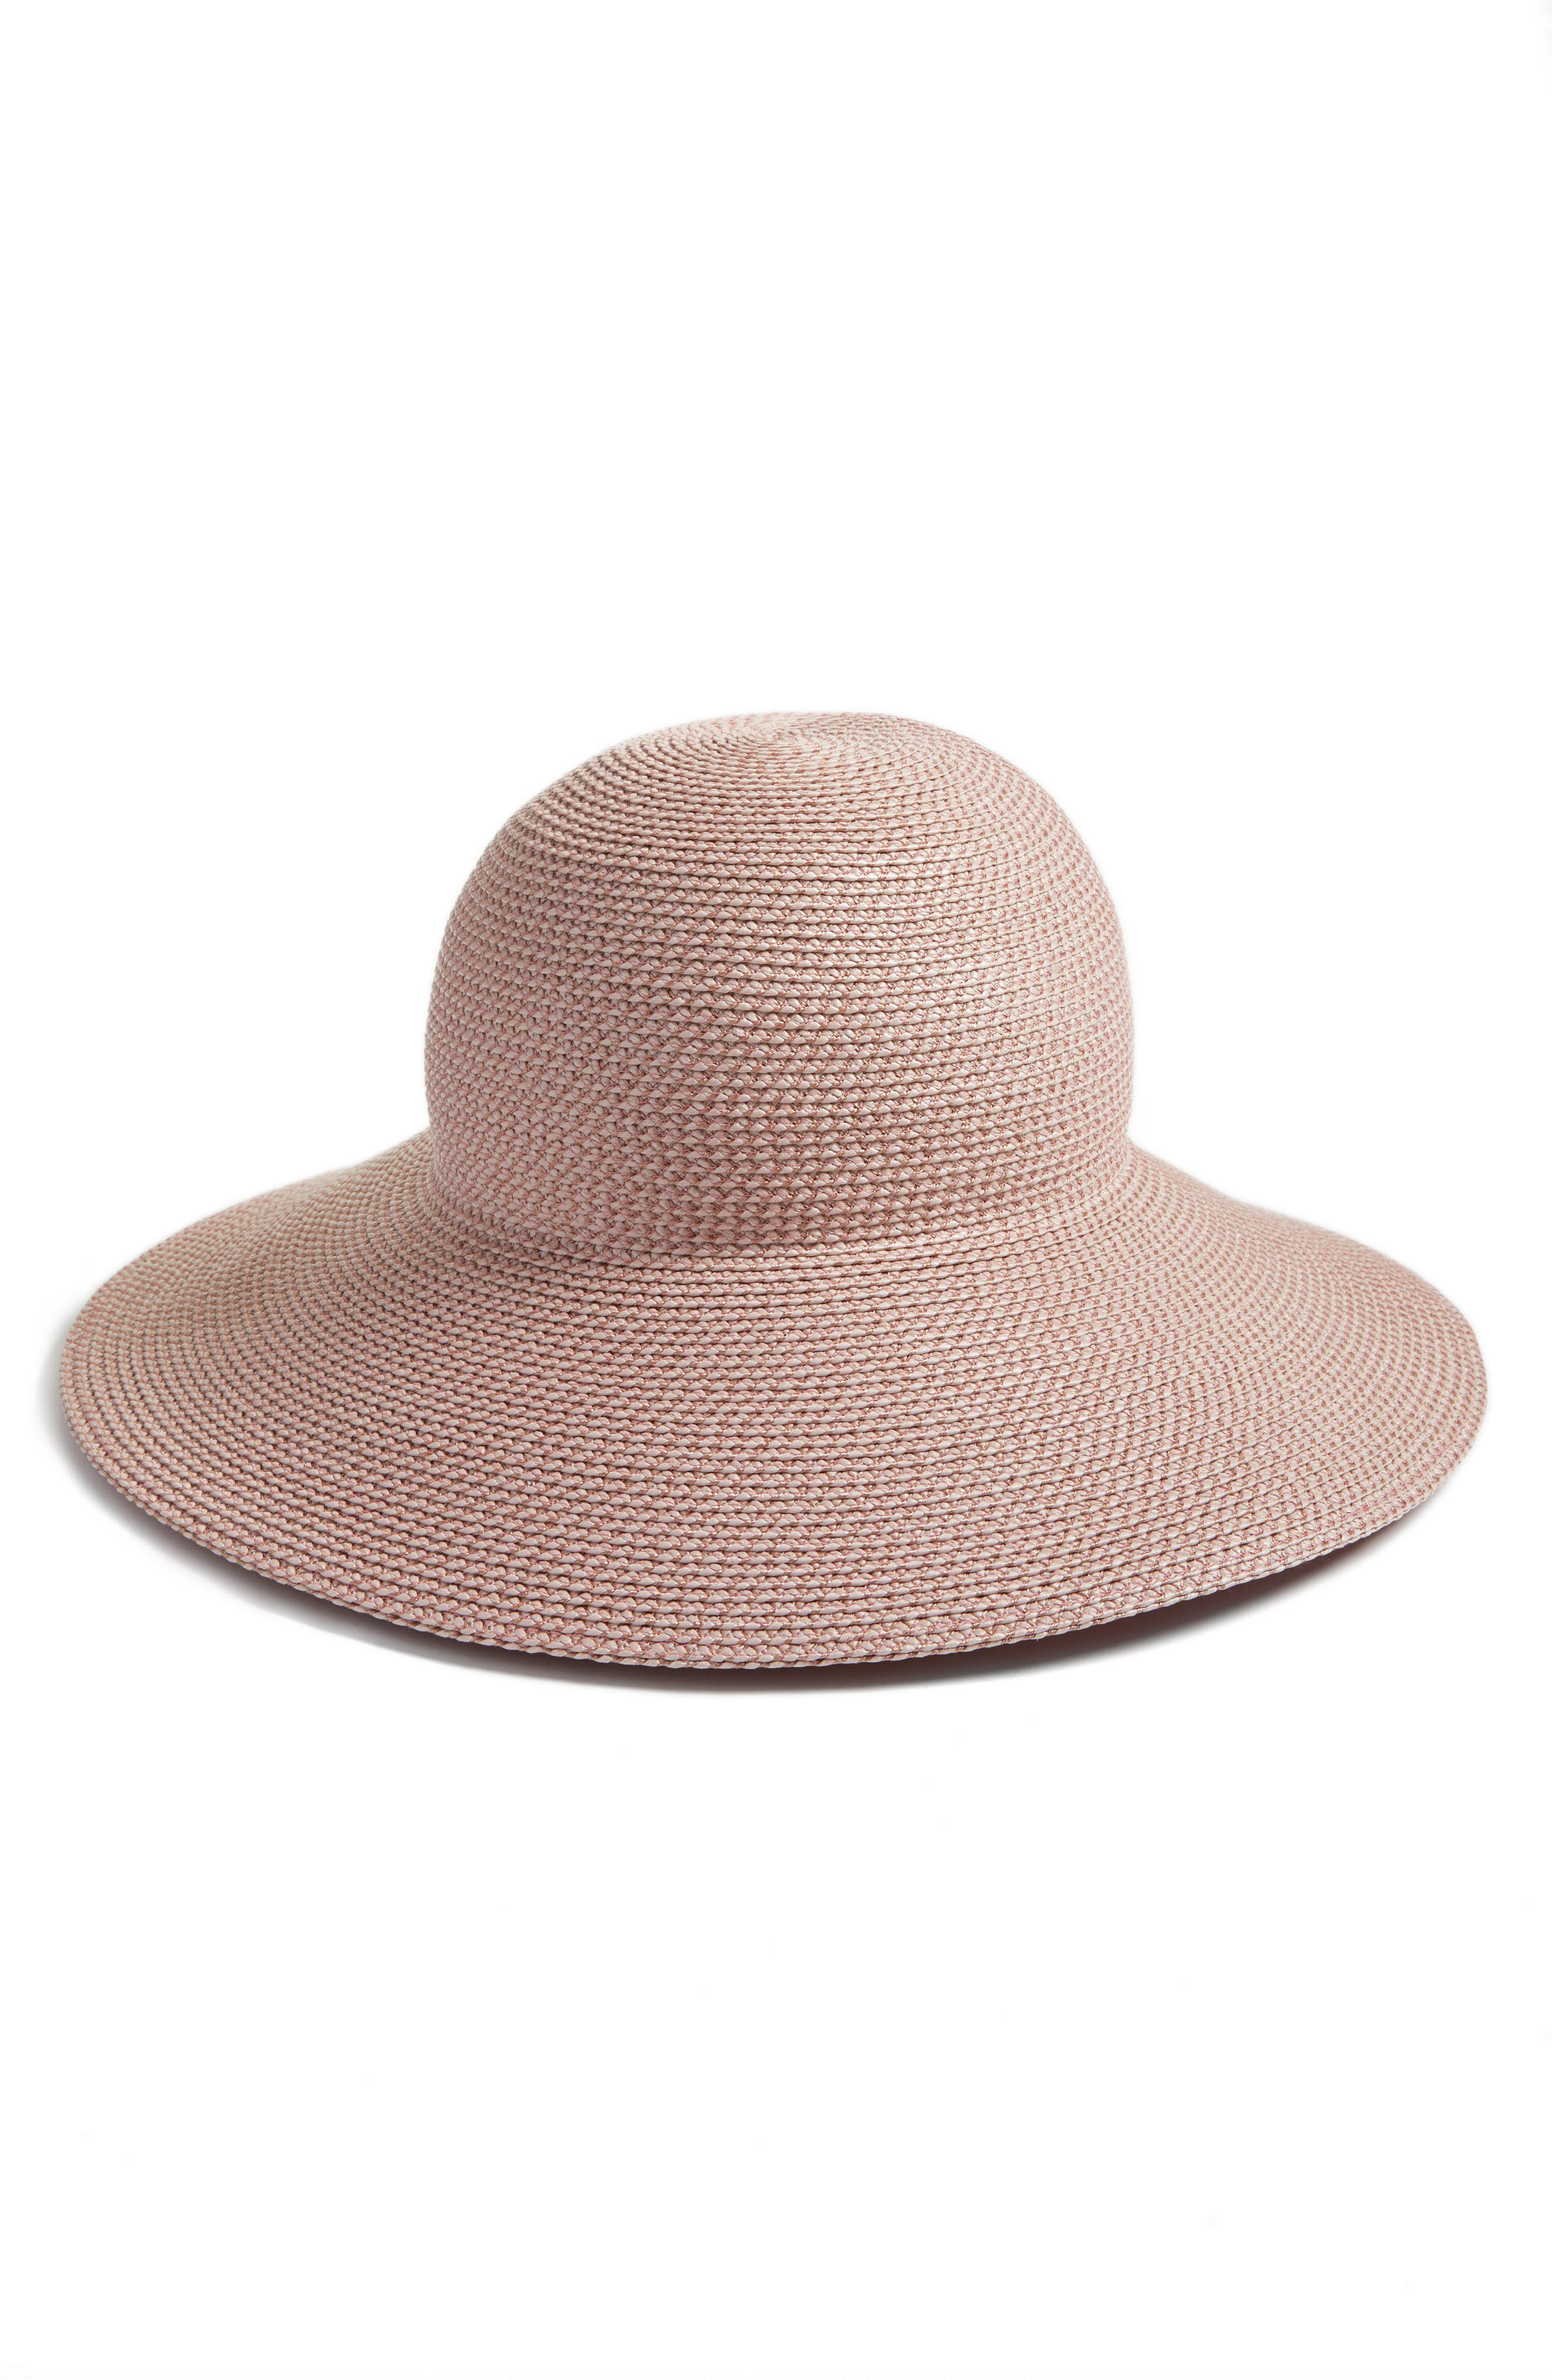 'Hampton' Straw Sun Hat,                         Main,                         color, BLUSH